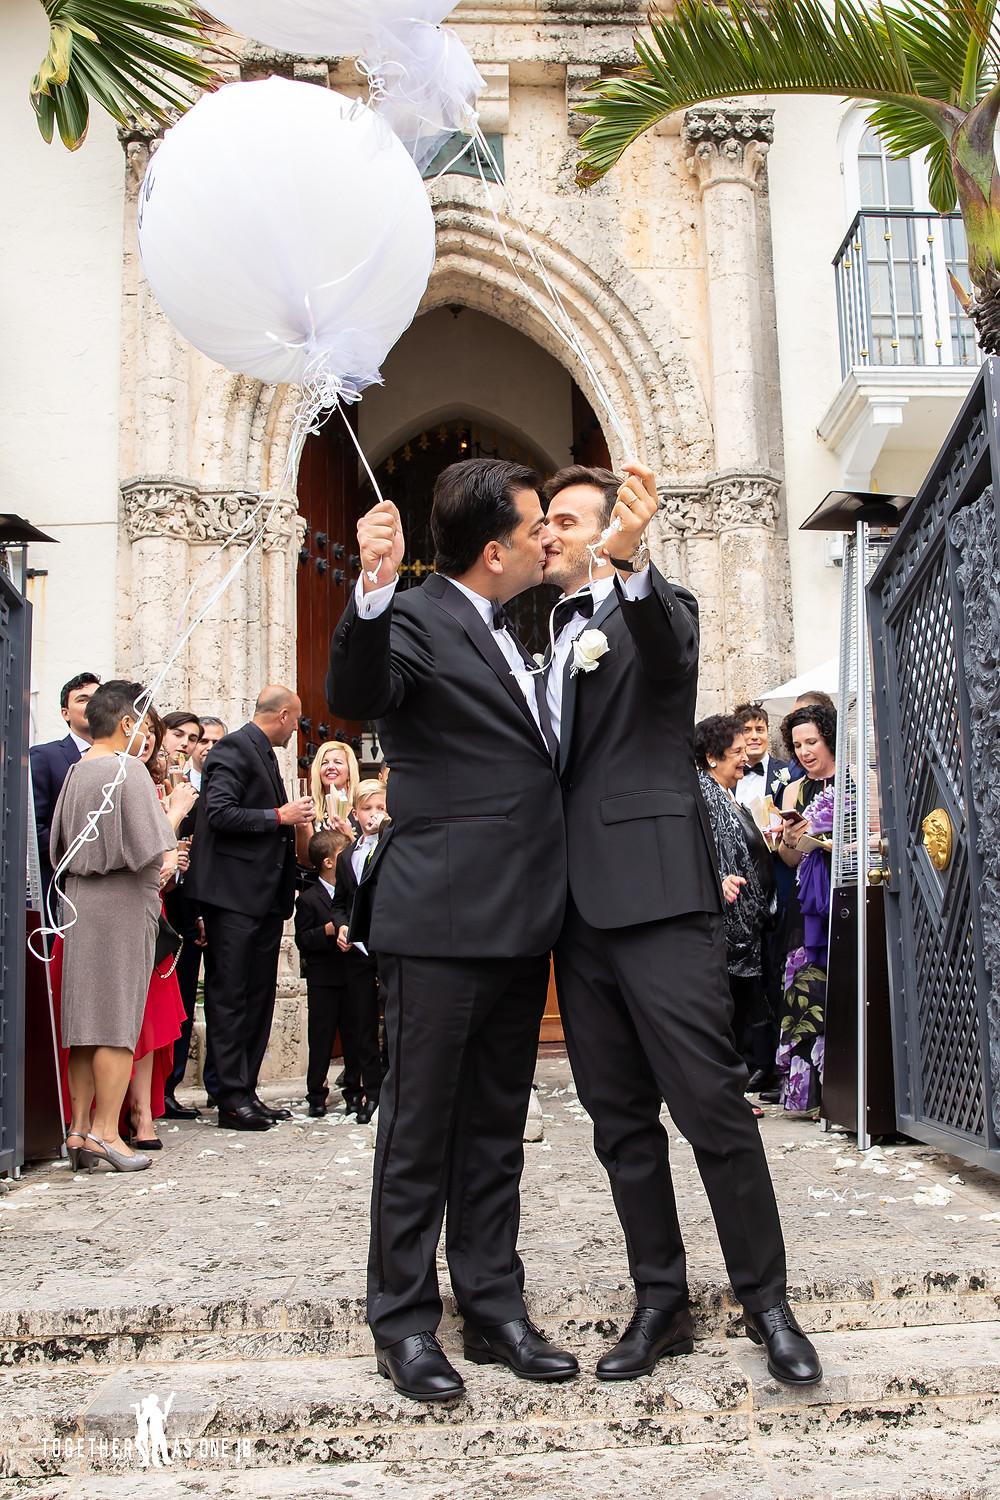 Grooms kiss as wedding guest enjoy cocktail hour groom hold wedding balloons